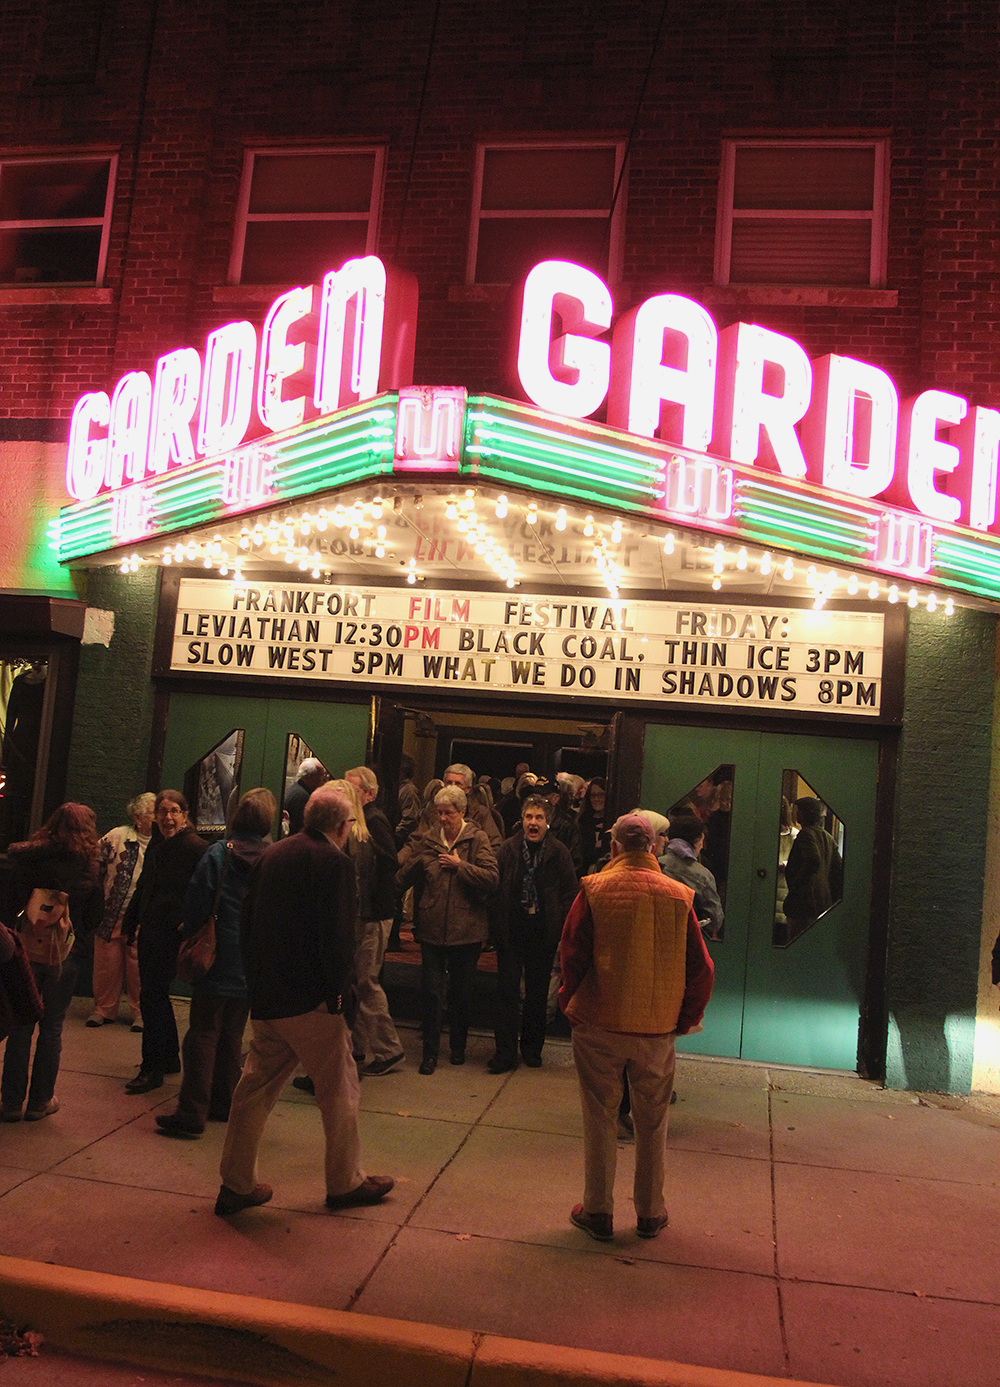 Frankfort Film Festival 2015 Garden Theater Frankfort MIchigan Aubrey Ann Parker photography